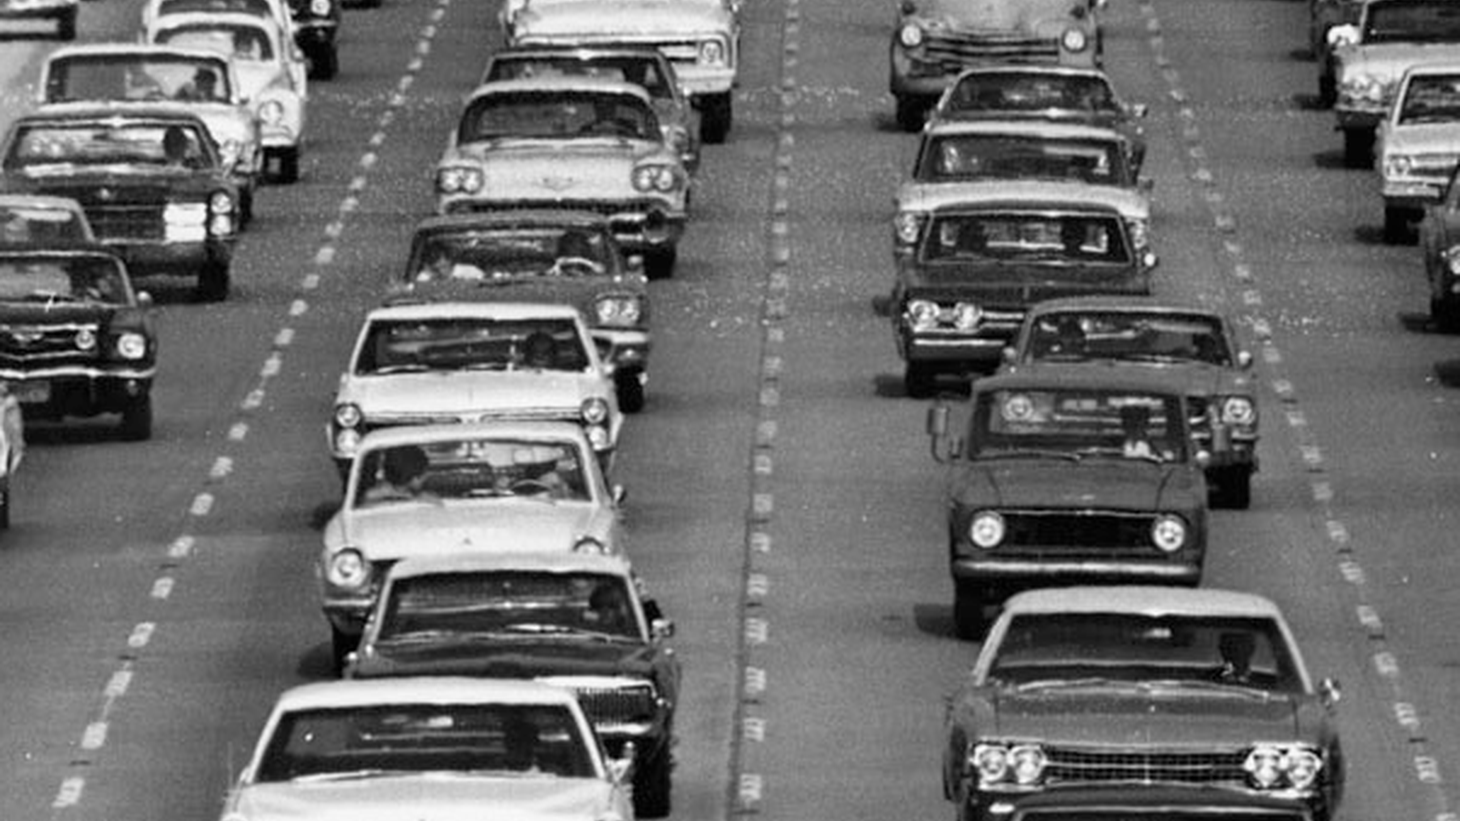 Los Angeles has fallen out of love with freeways. Or has it? Freeways were once liberating bridges between communities. Now they are polluting, rush-hour parking lots that form walls within LA.